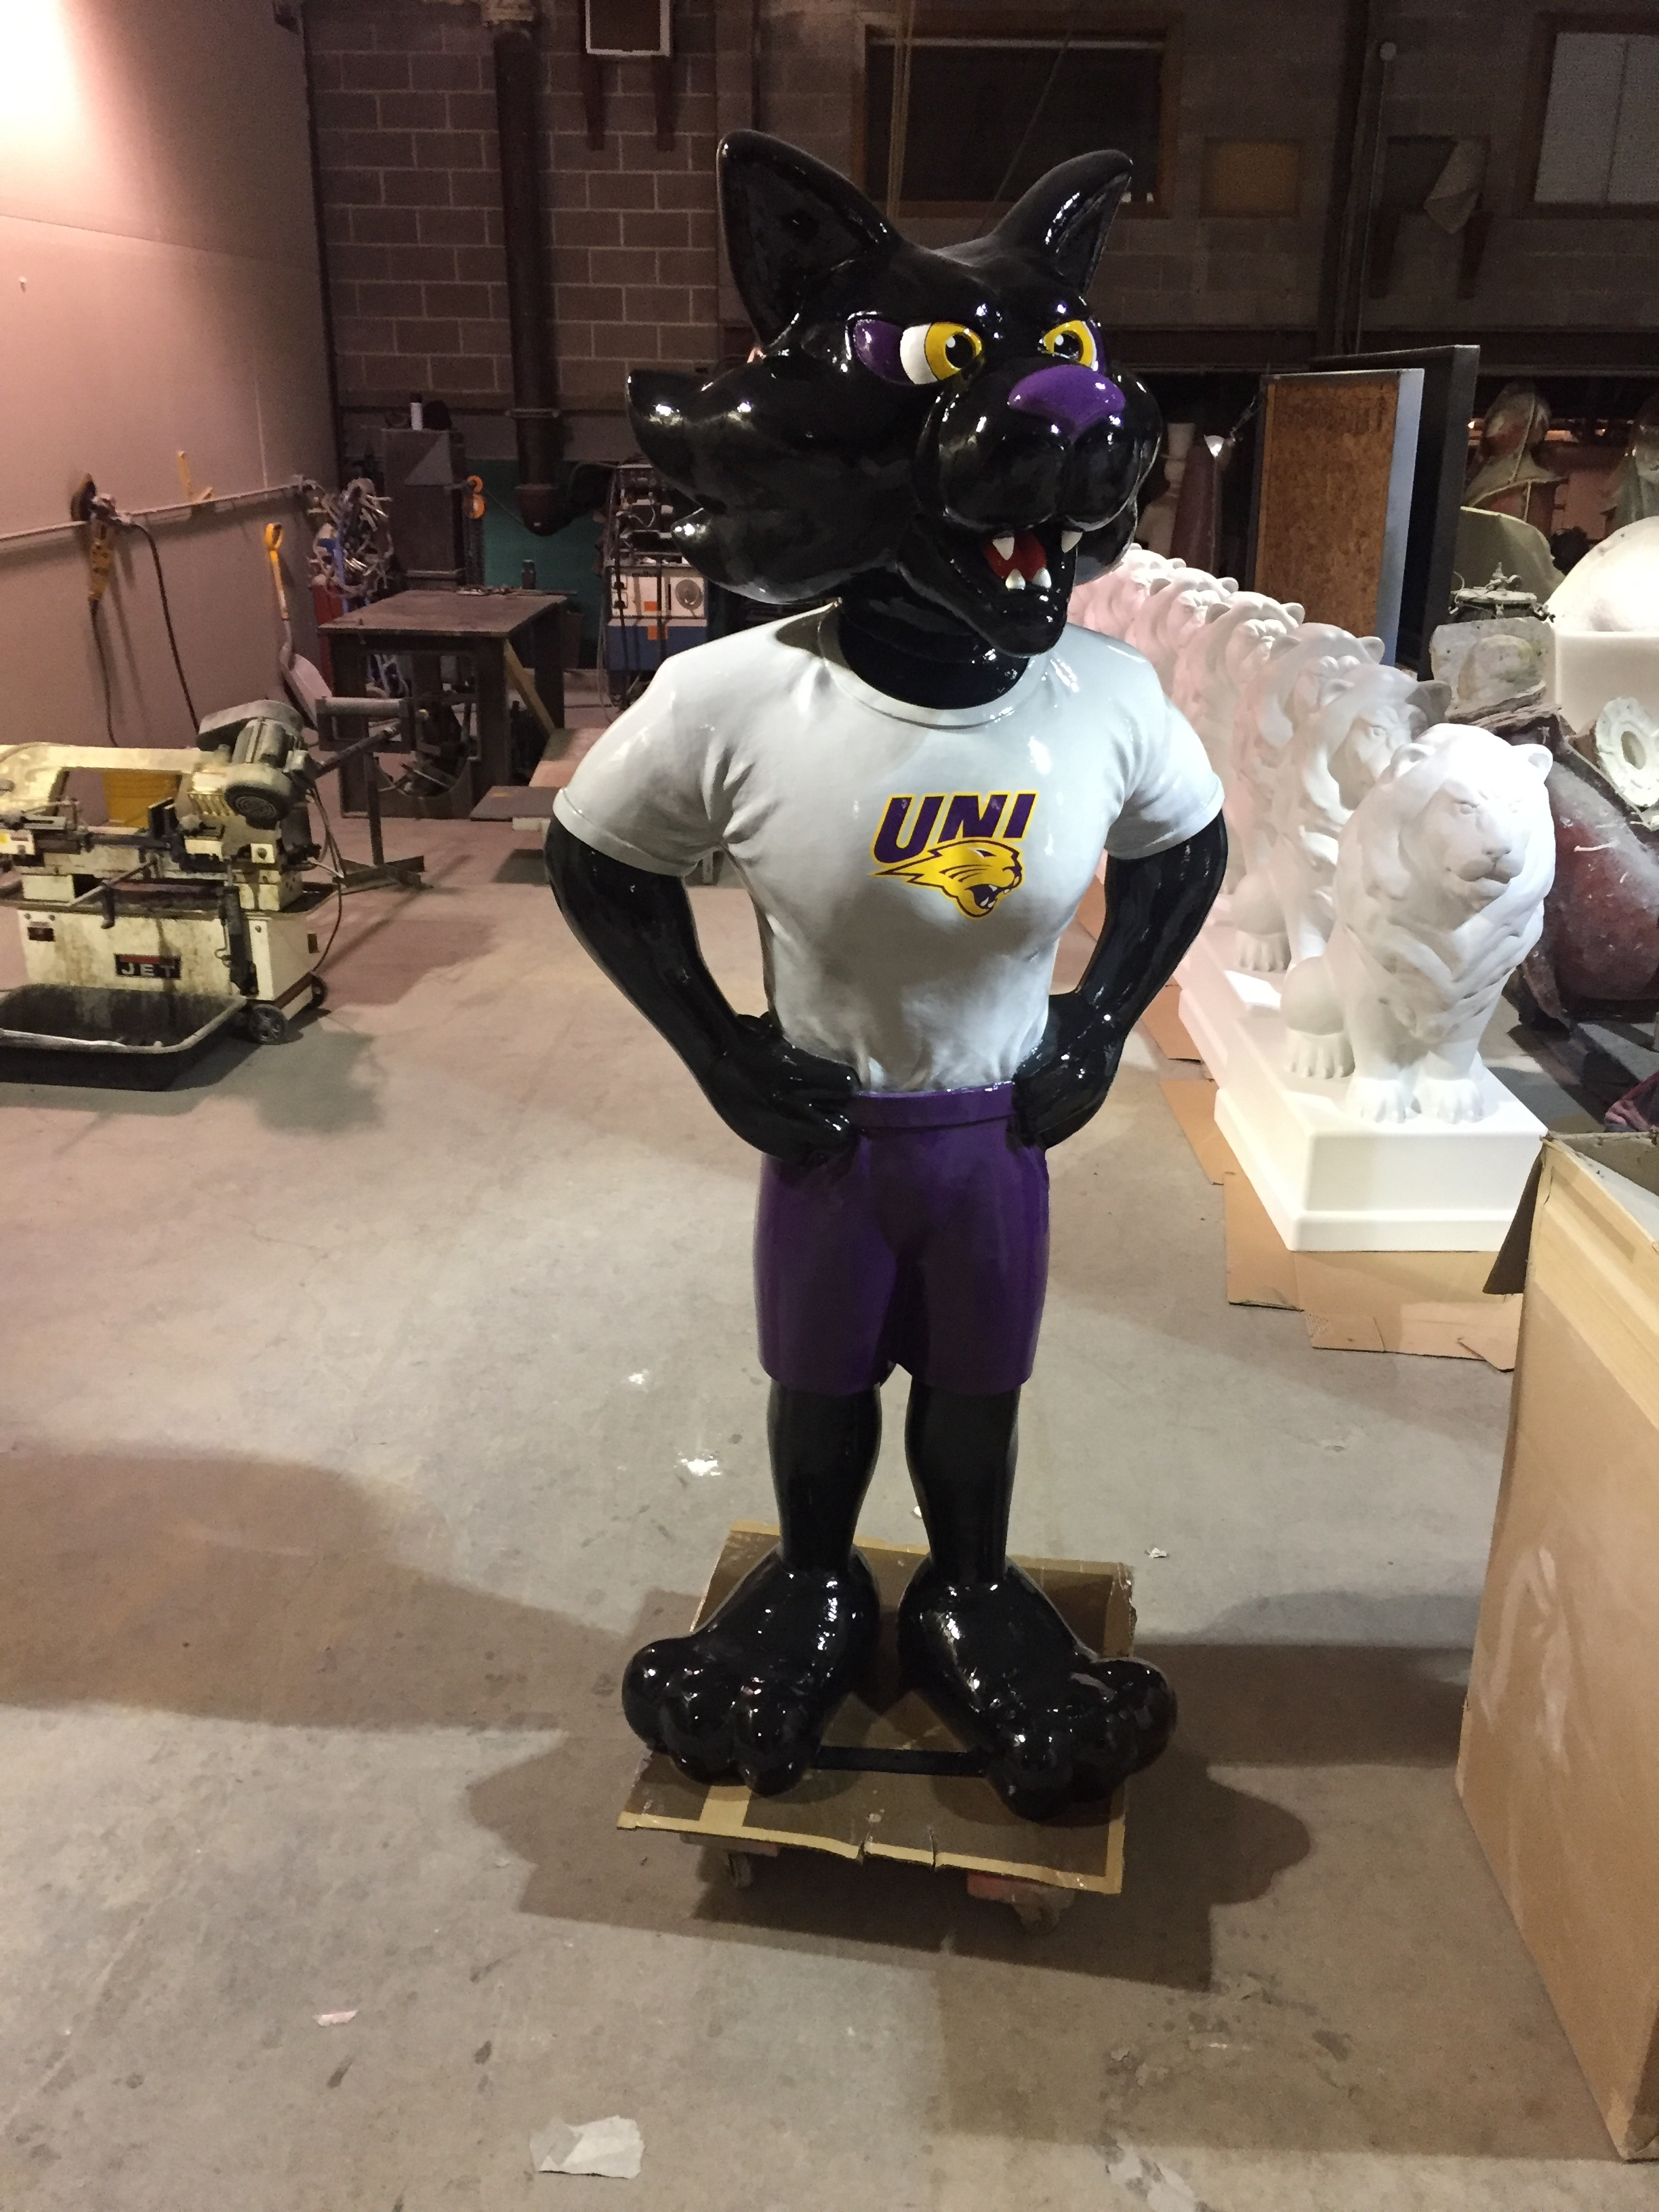 University of Northern Iowa mascot TC. Contracted for the book store in 2018